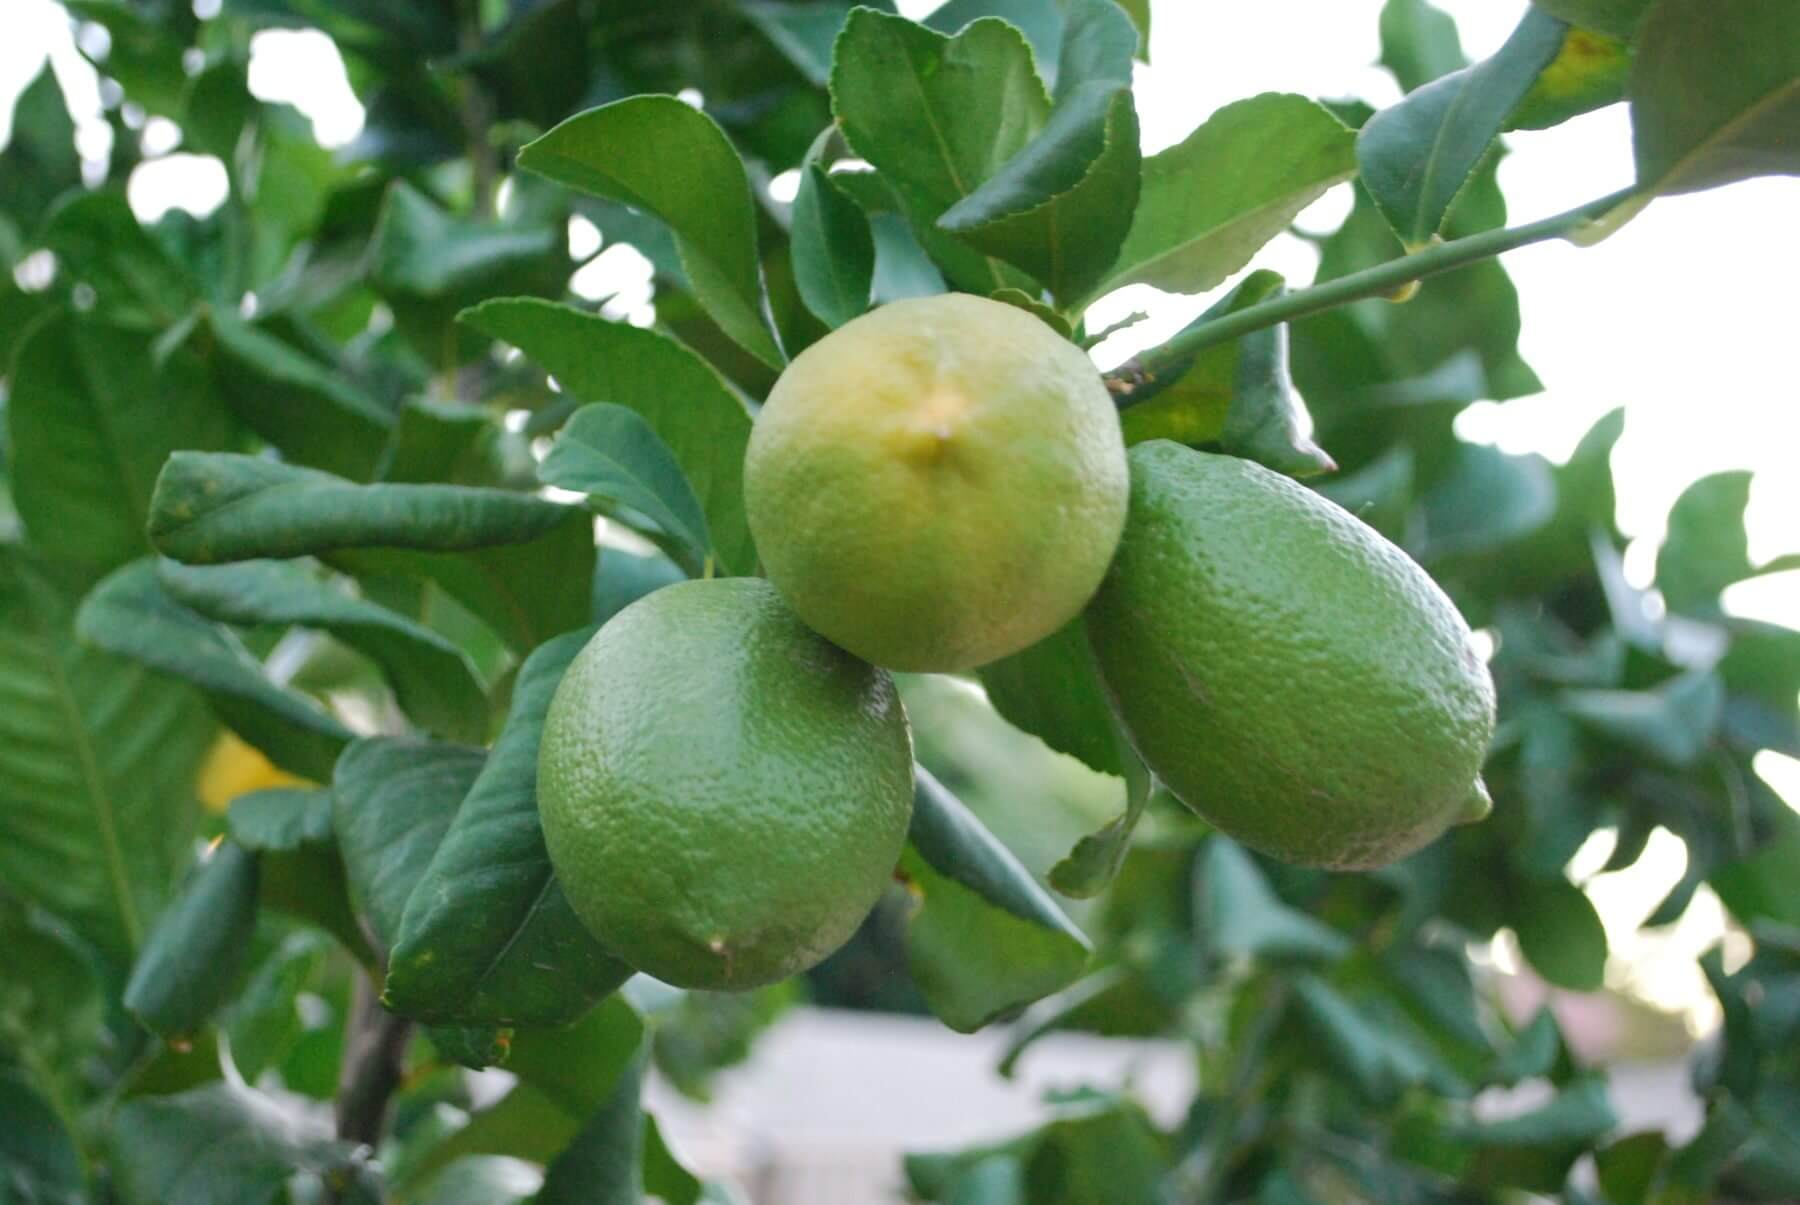 Growing Limes in Containers